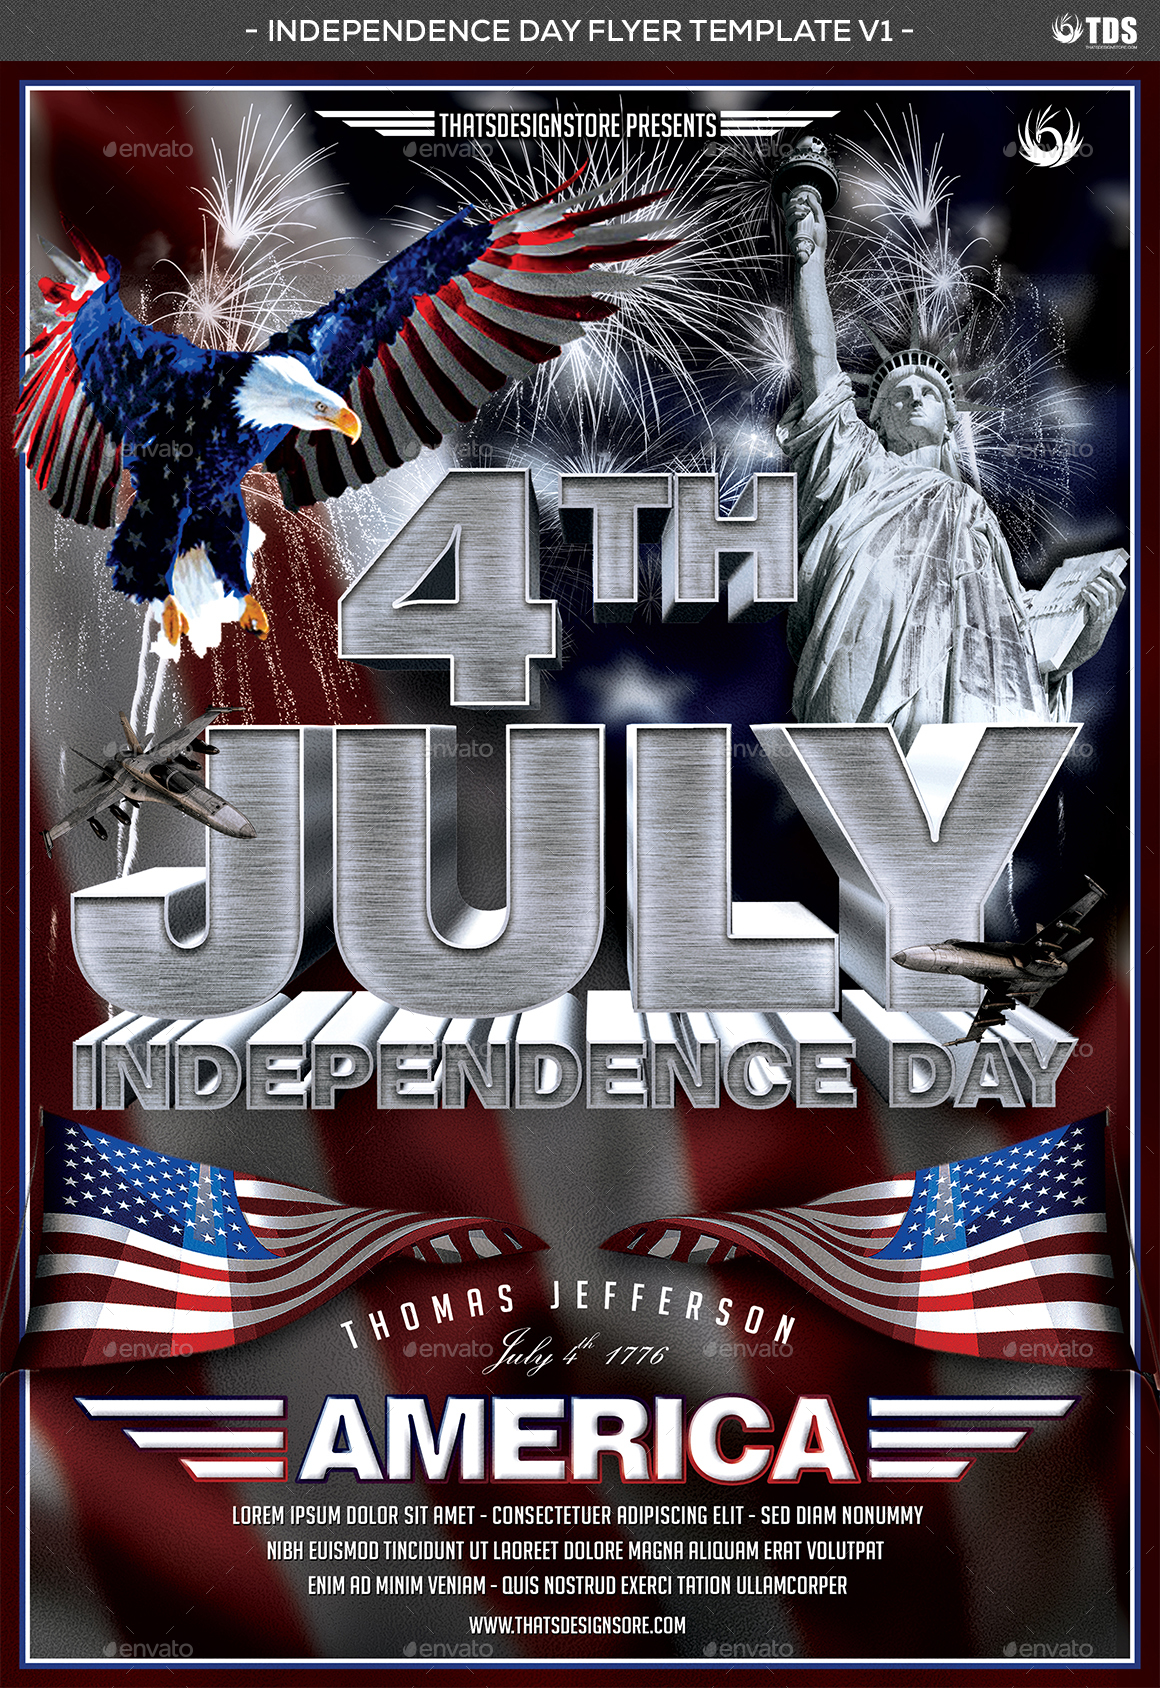 01_July 4 Independence Day Flyer Template V1 02_July 4 Independence Day  Flyer Template V1 03_July 4 Independence Day Flyer Template V1 ...